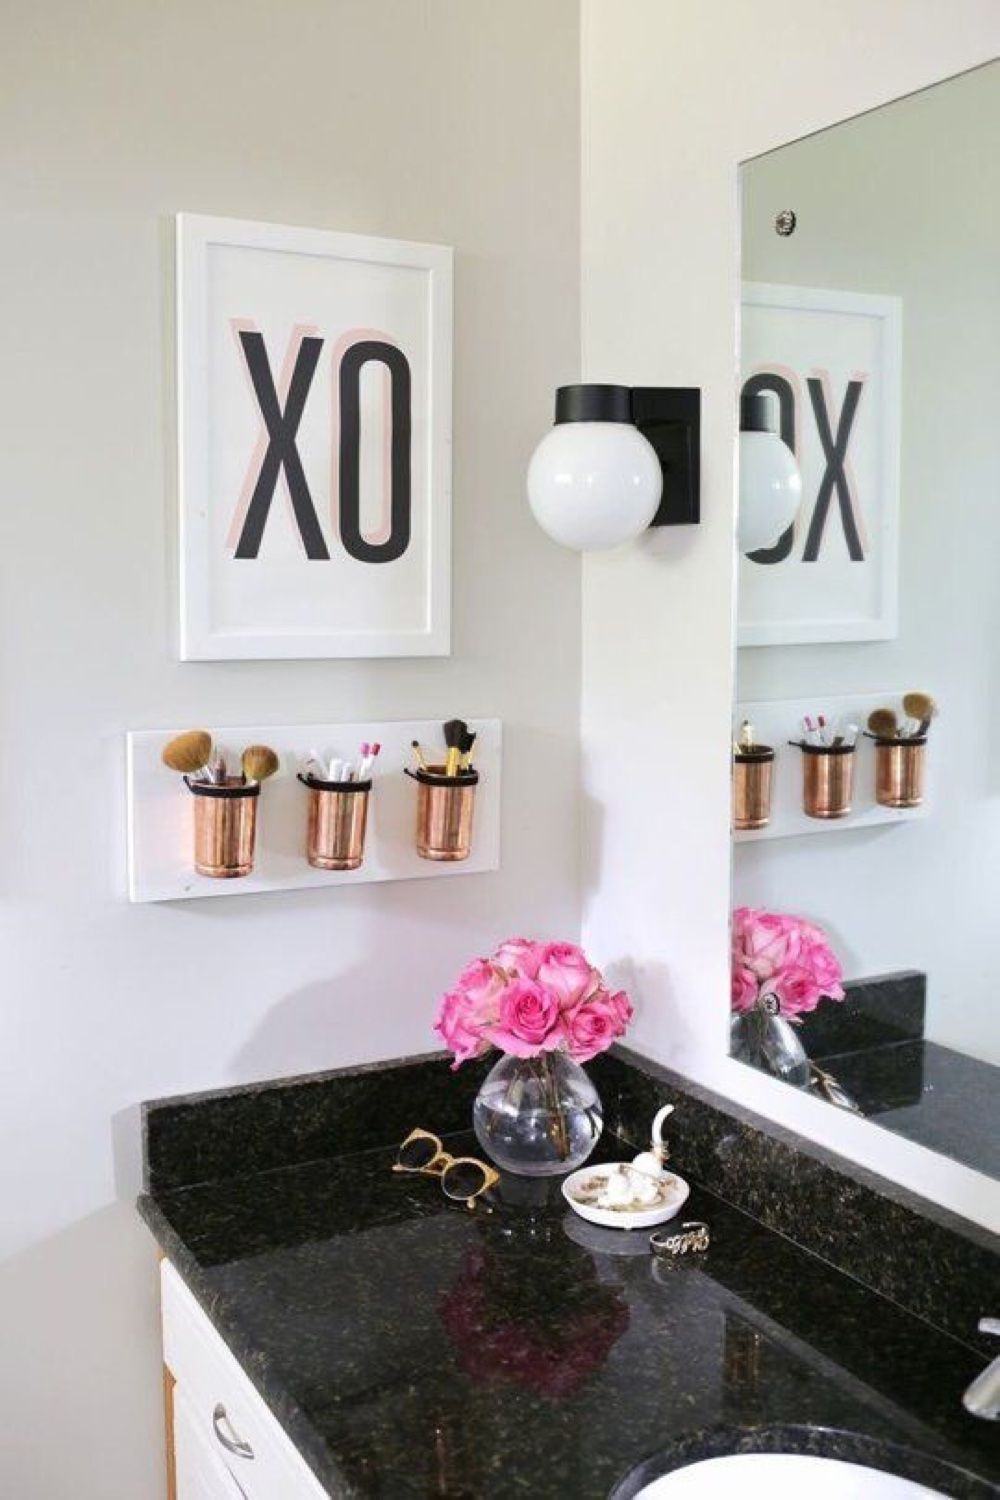 Pink and Black Bathroom Decor Fresh Home and Interior Ideas Marvelous Black Pink Decor for Small